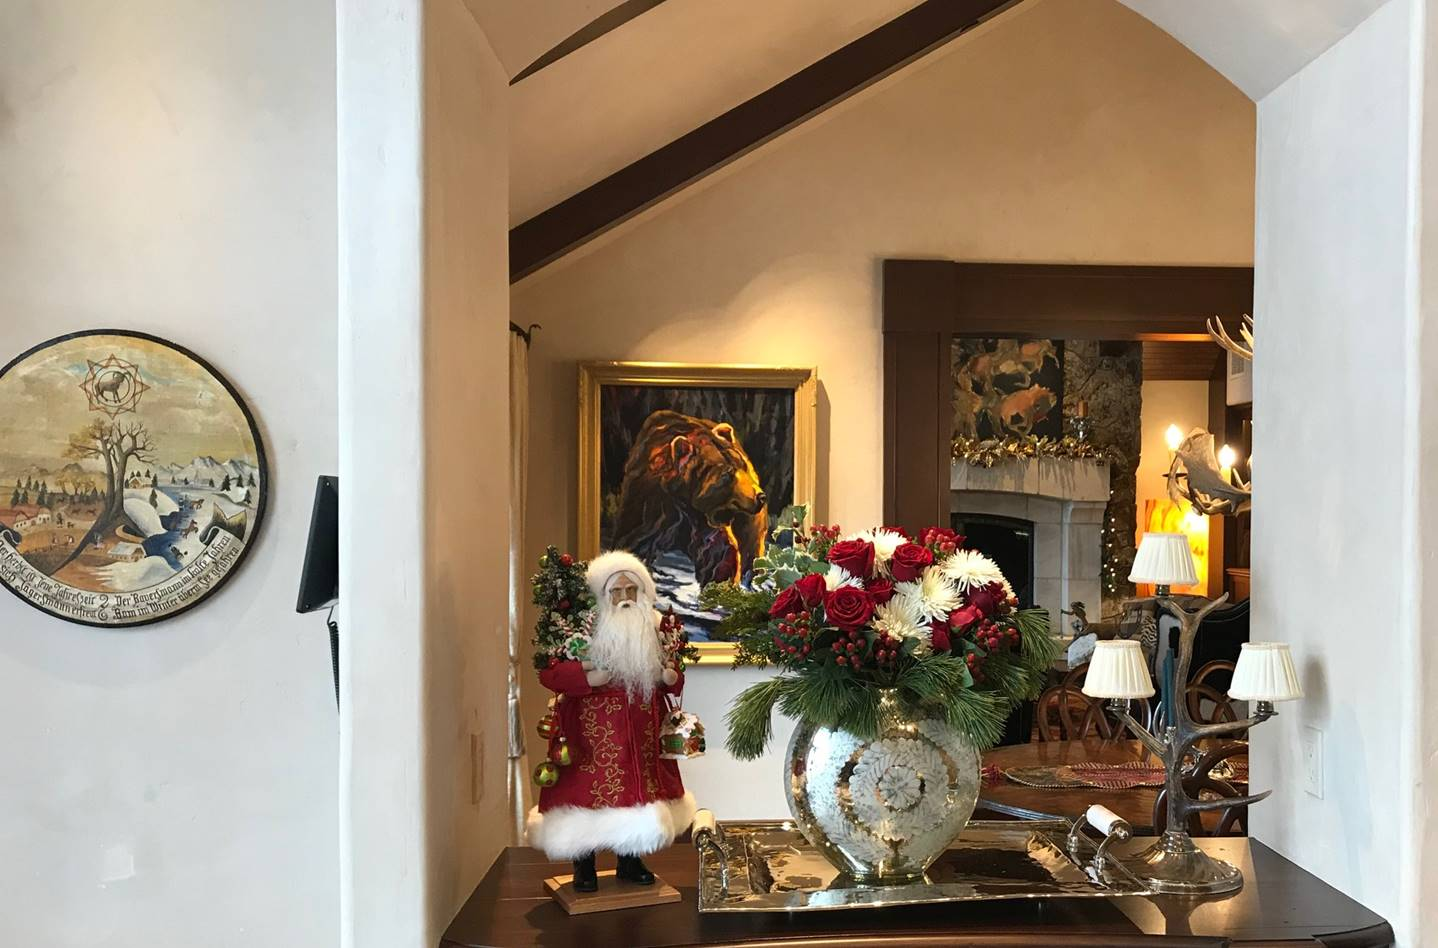 Kitchen Arch Holiday Flowers and Santa